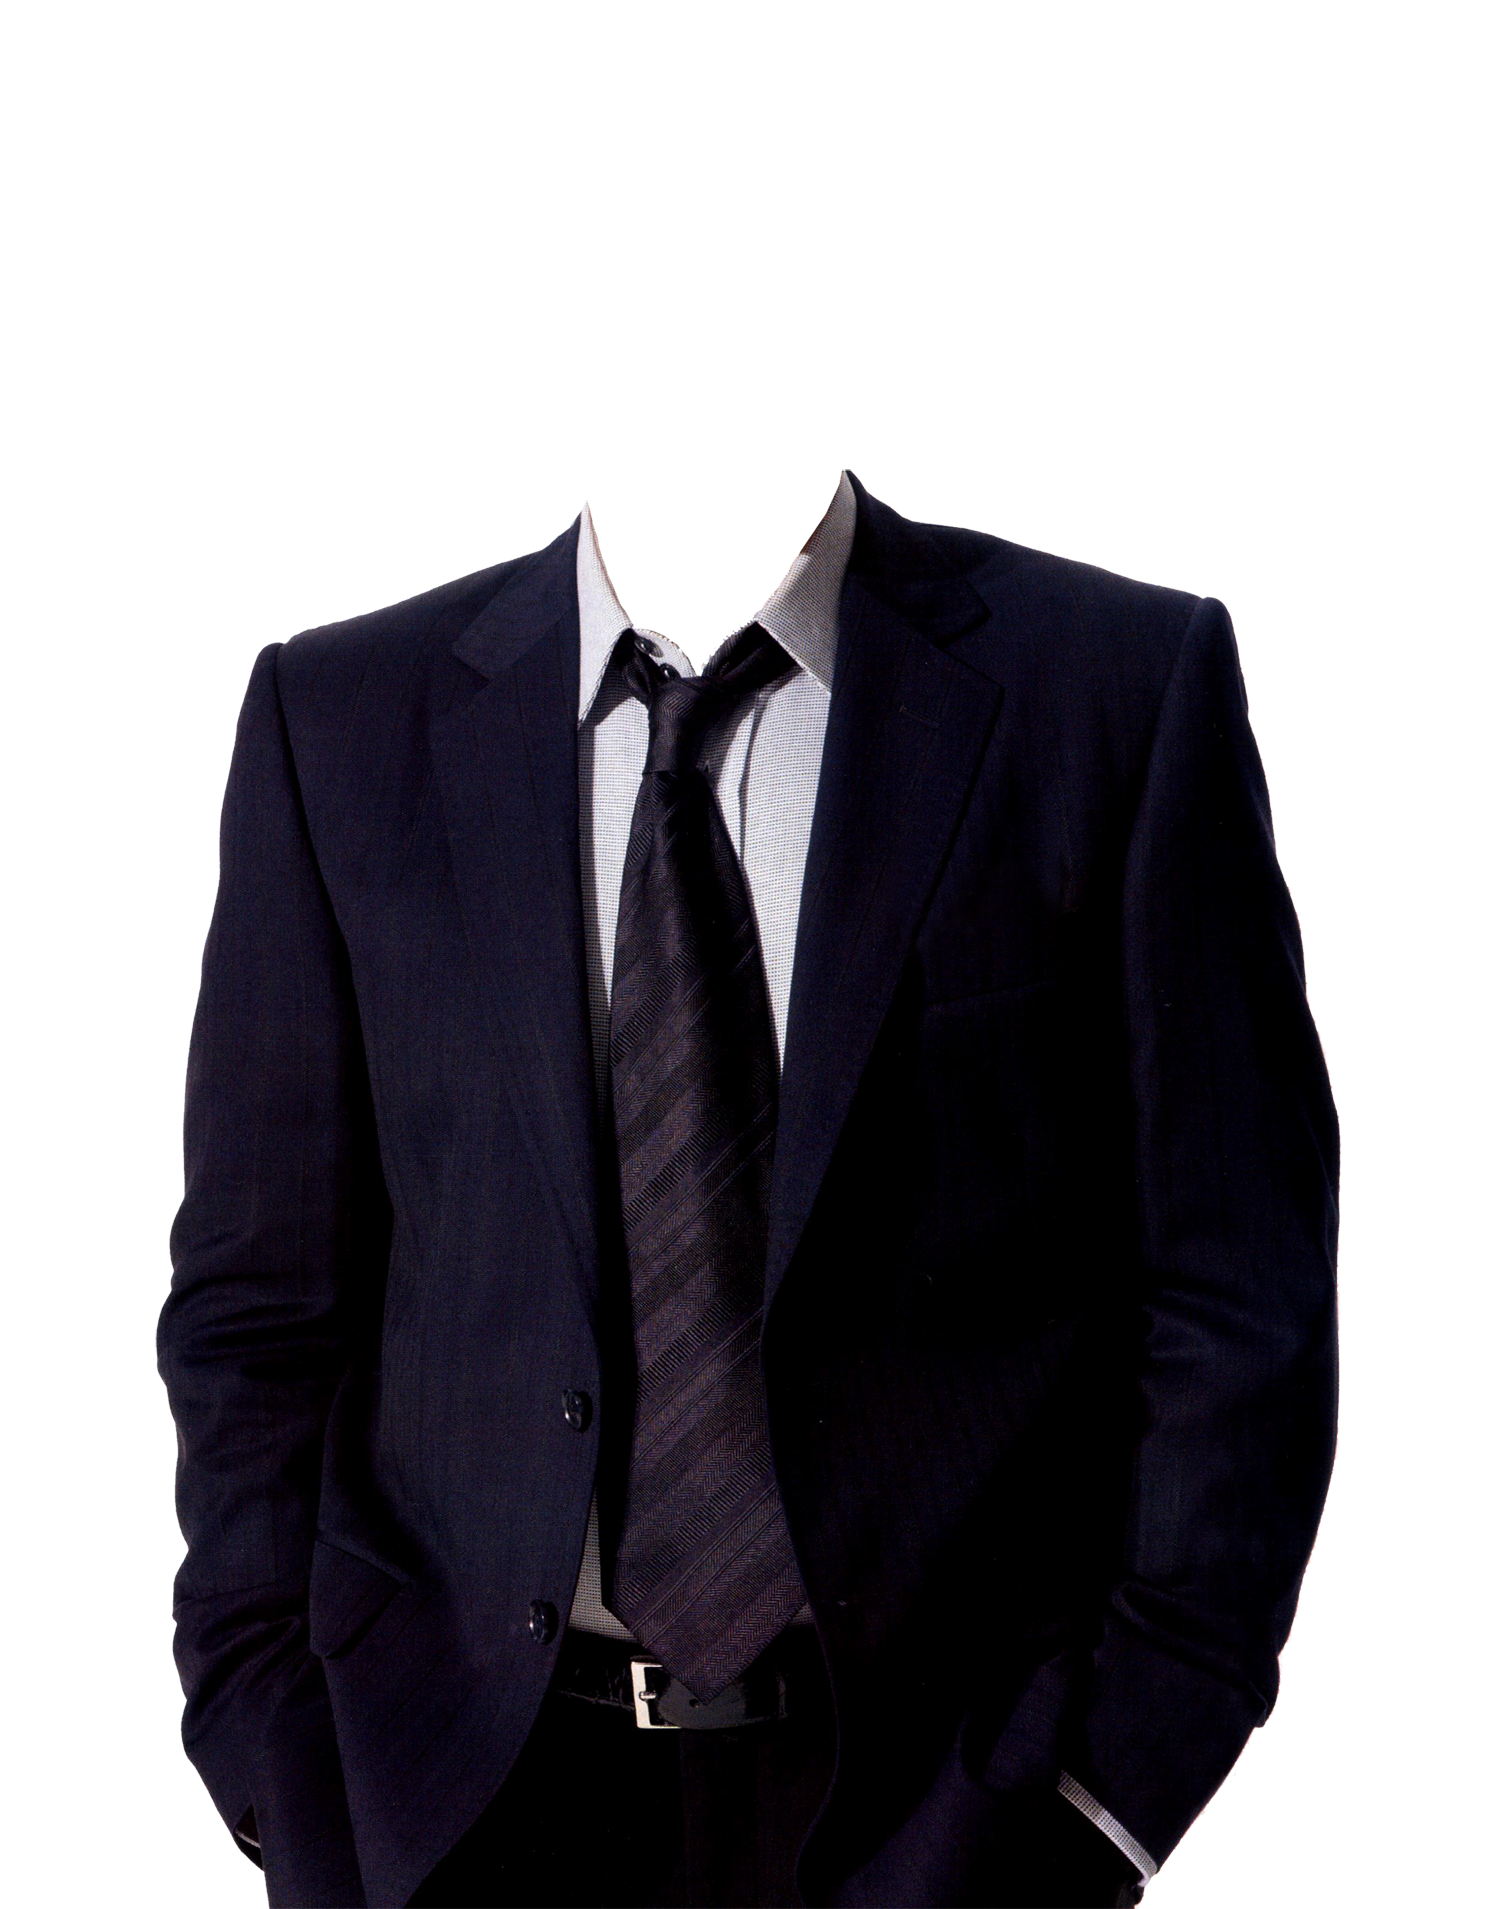 svg royalty free library Suit PNG image